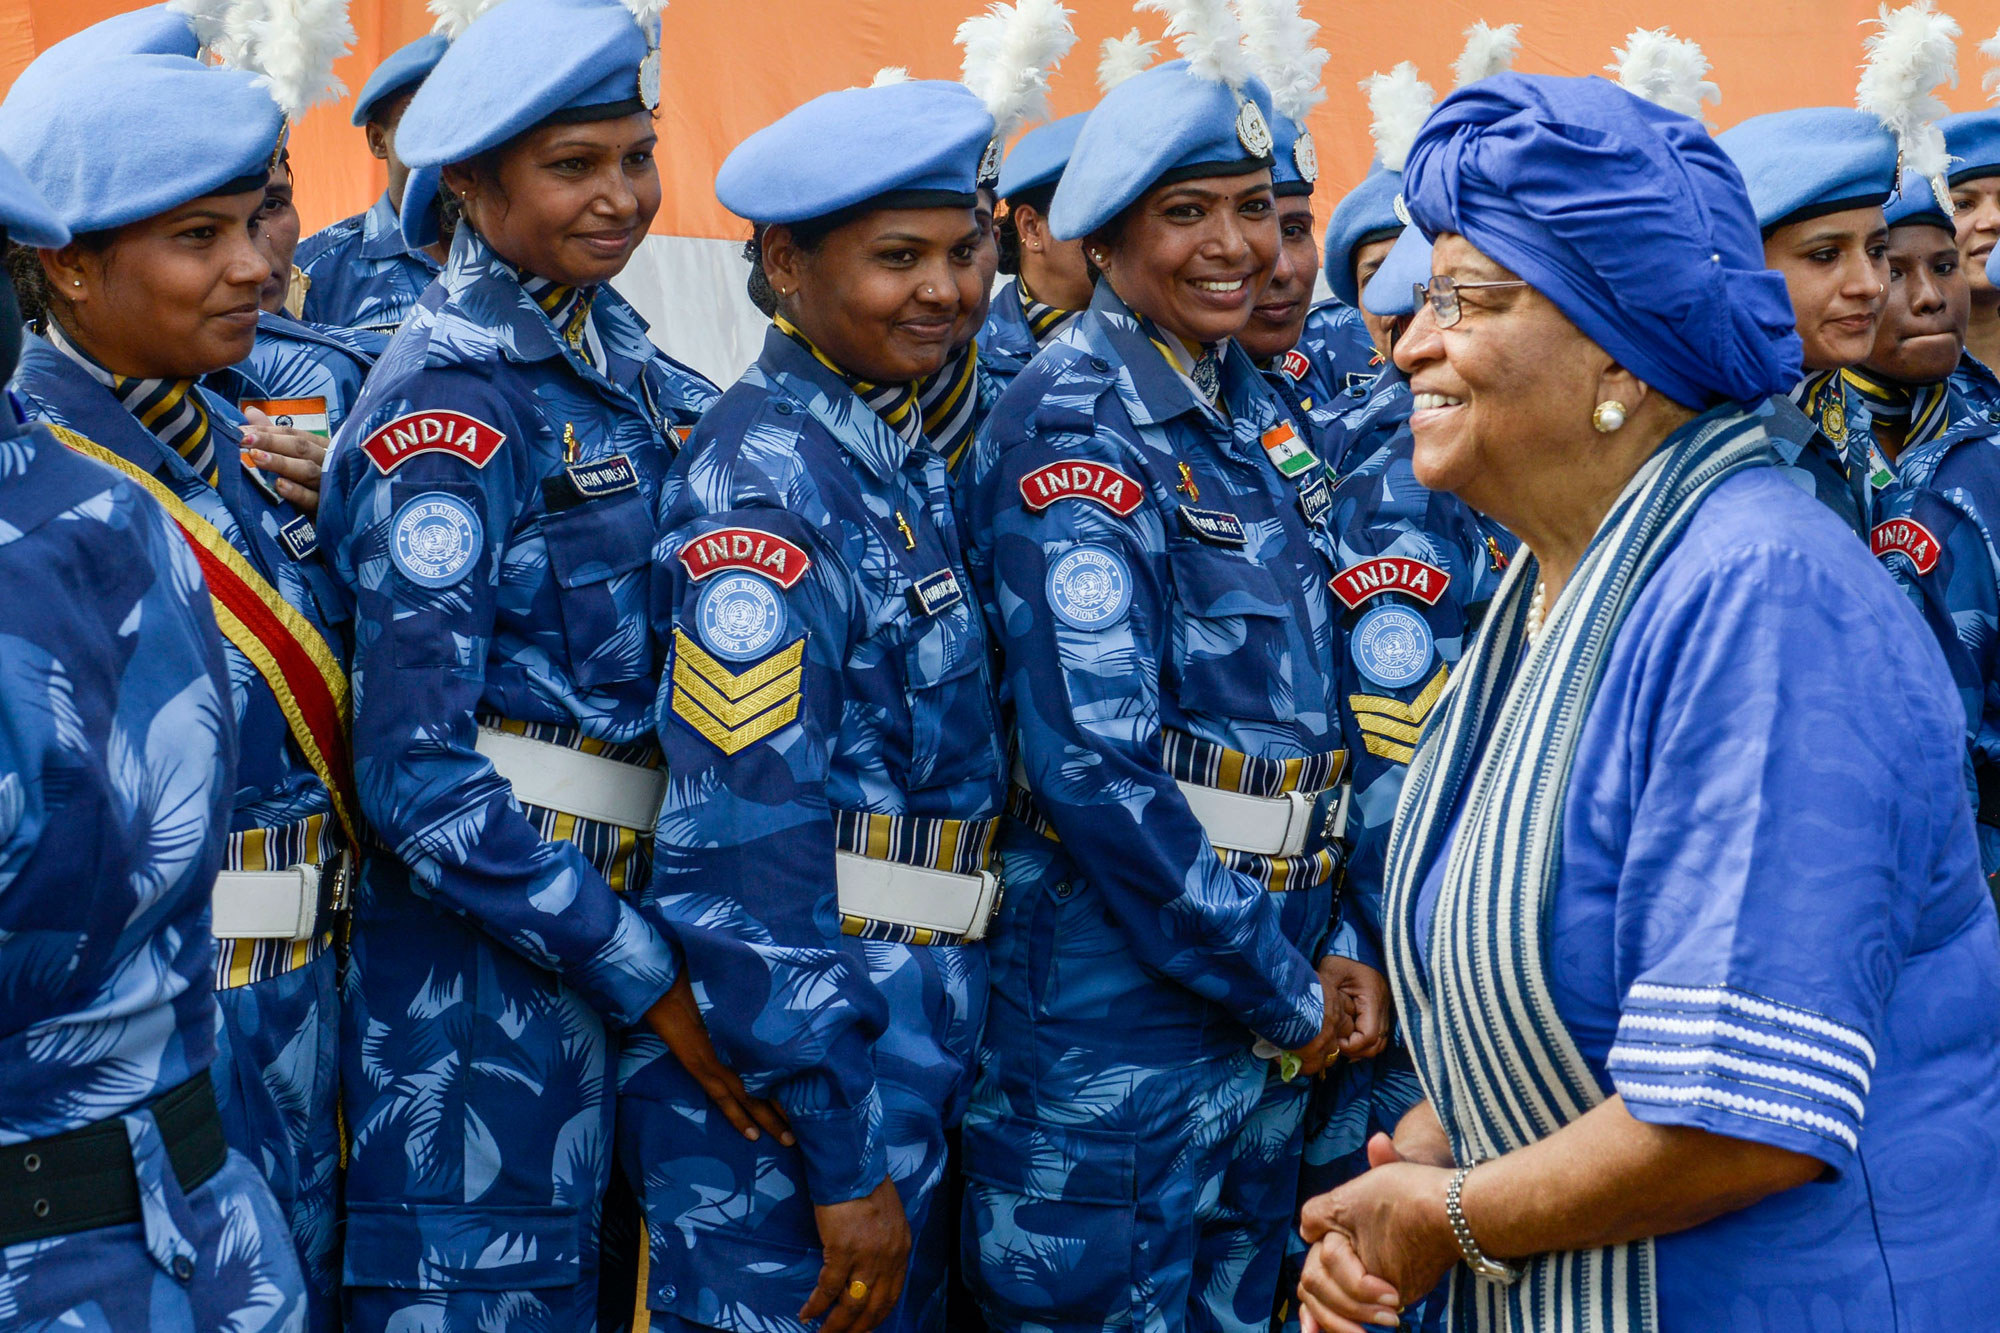 President Ellen Johnson-Sirleaf (left) with members of the all-female Indian Formed Police Unit serving with the UN Mission in Liberia. Photo: Emmanuel Tobey/UNMIL